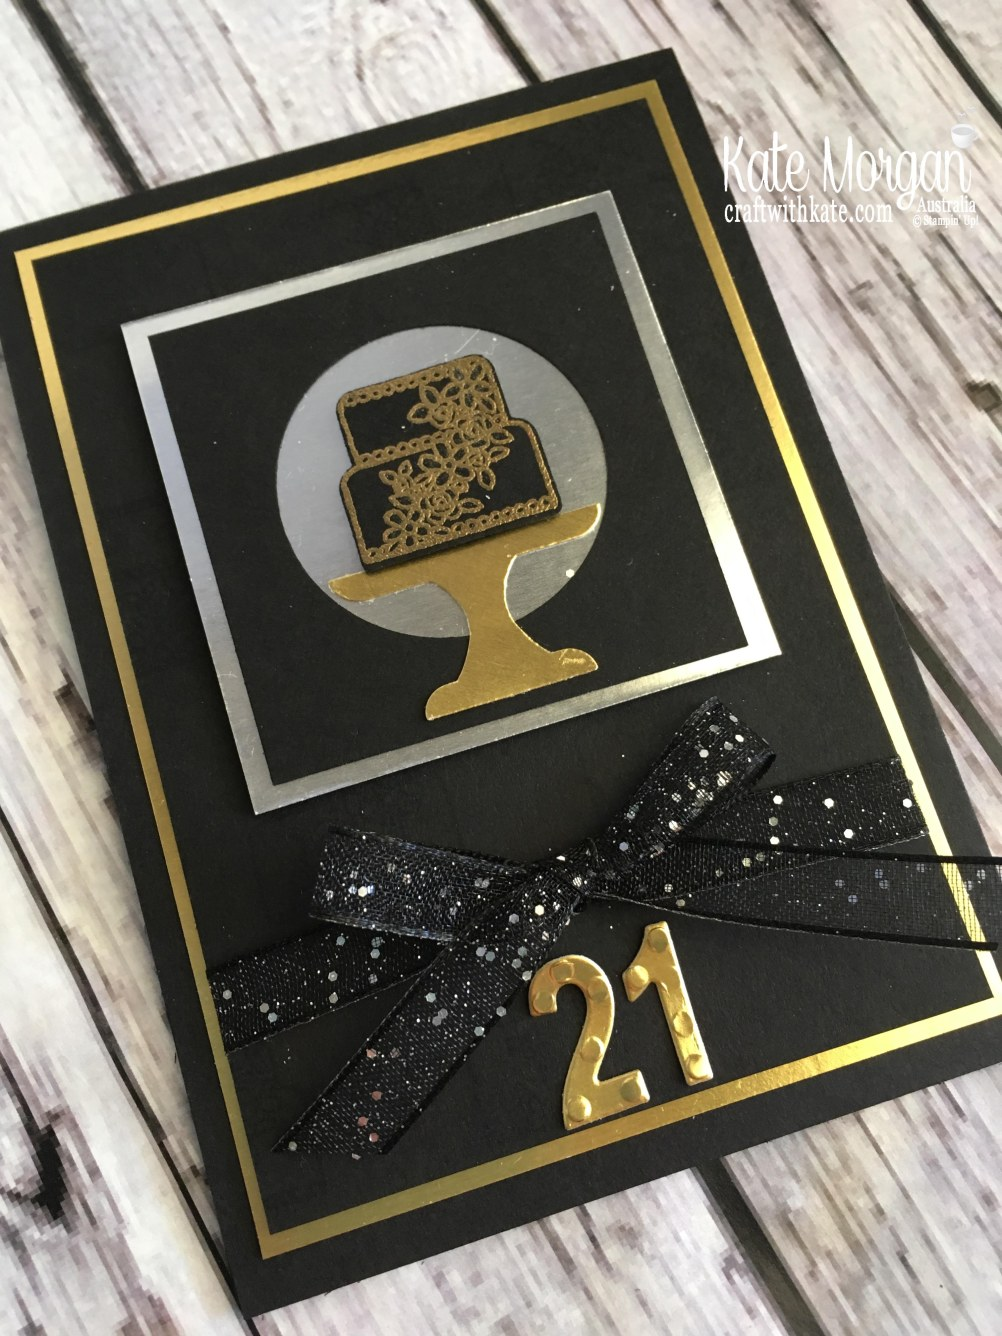 Piece of Cake in Black Silver Gold, Occasions catalogue 2019 Sneak Peek by Kate Morgan, Stampin Up Australia.JPG